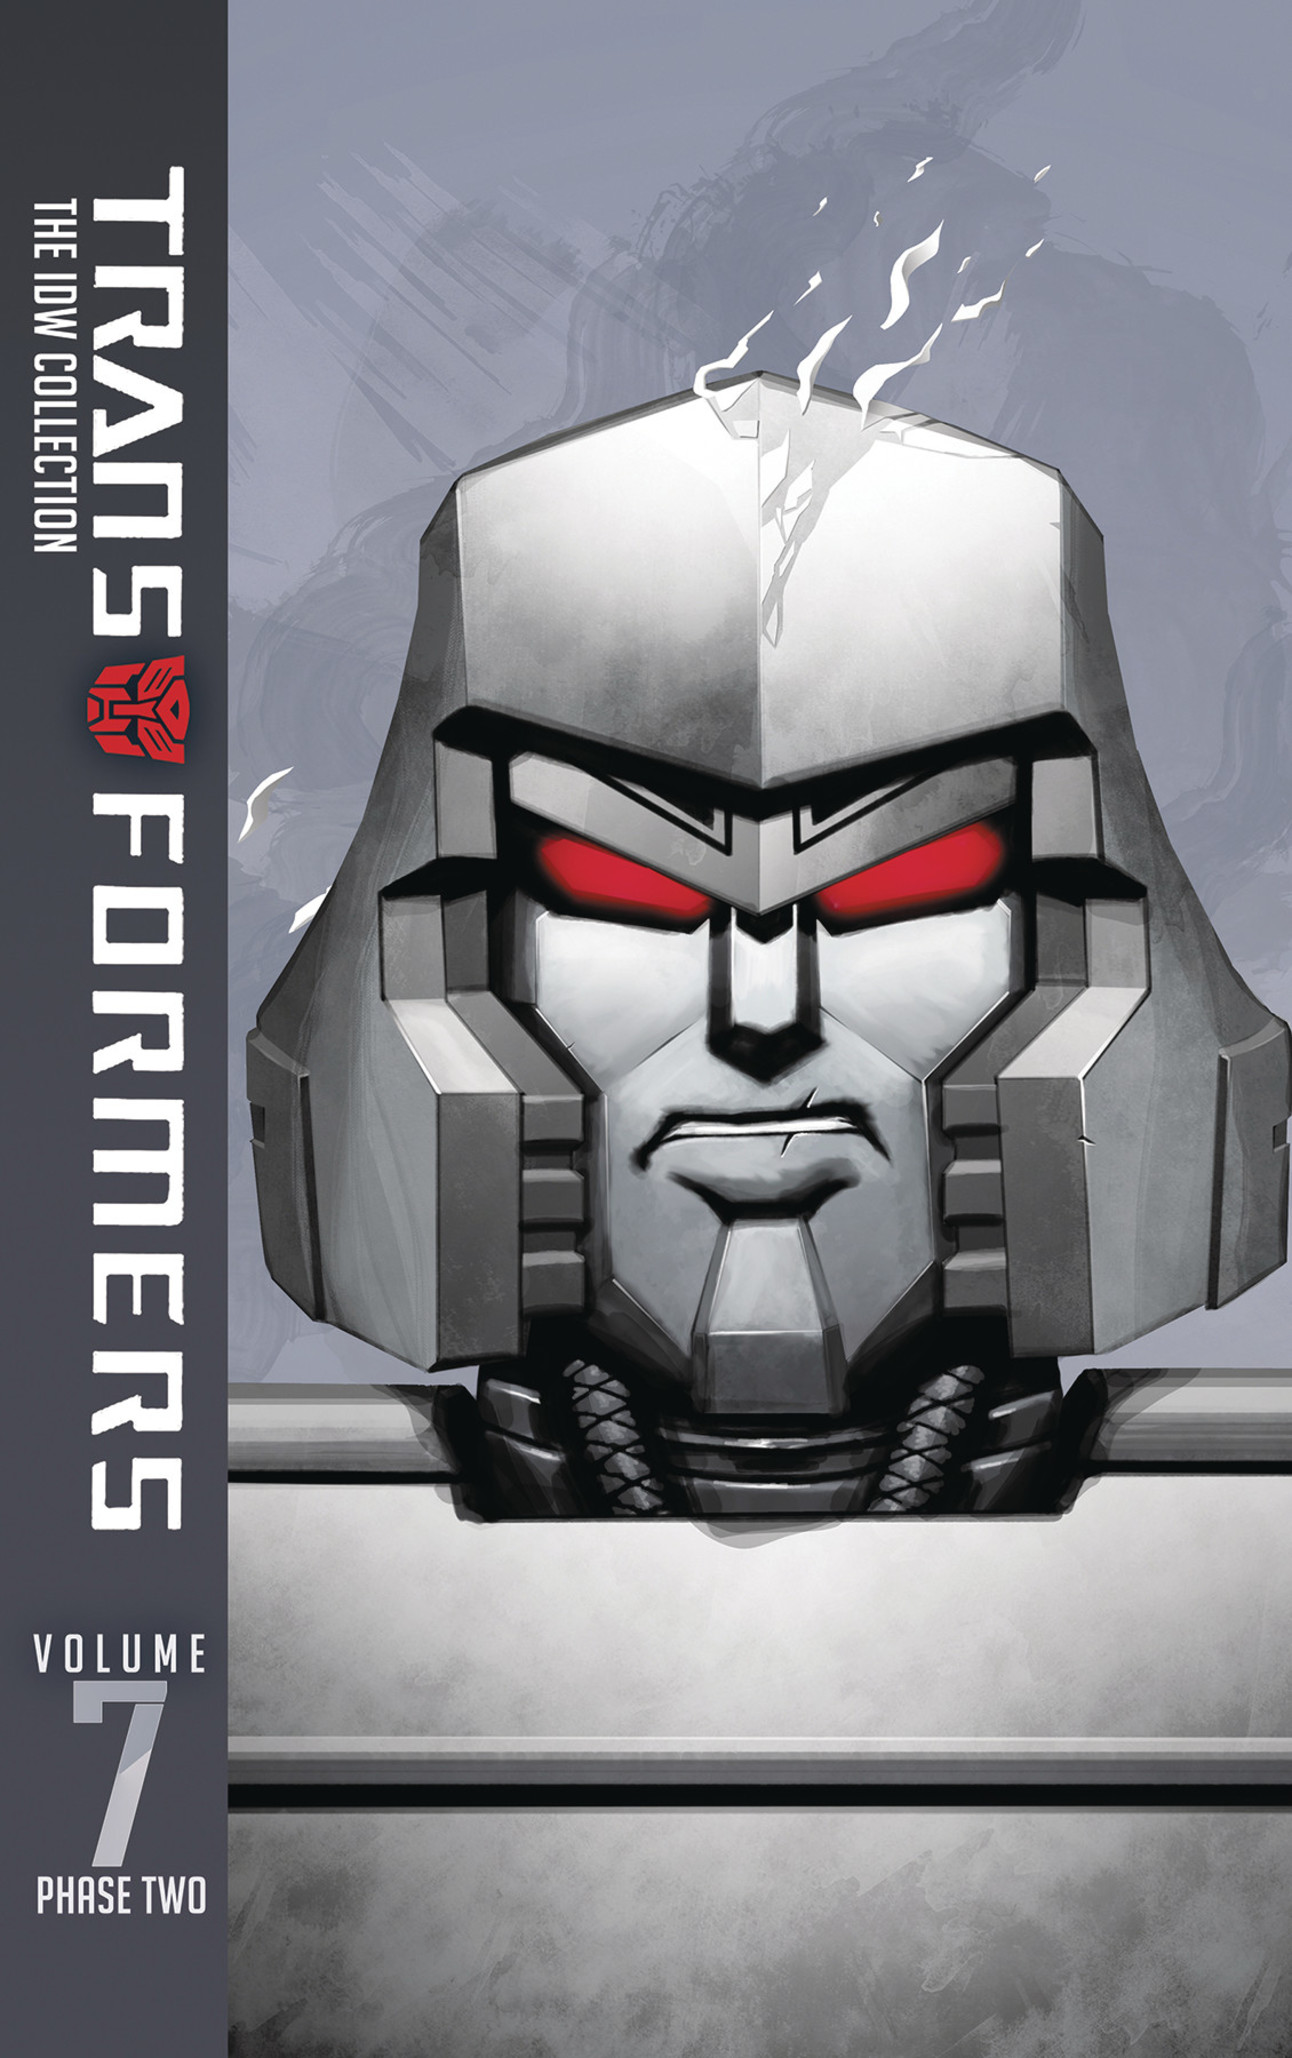 idw_trasnformers_collection_phase_two_vol_7_cover.jpg